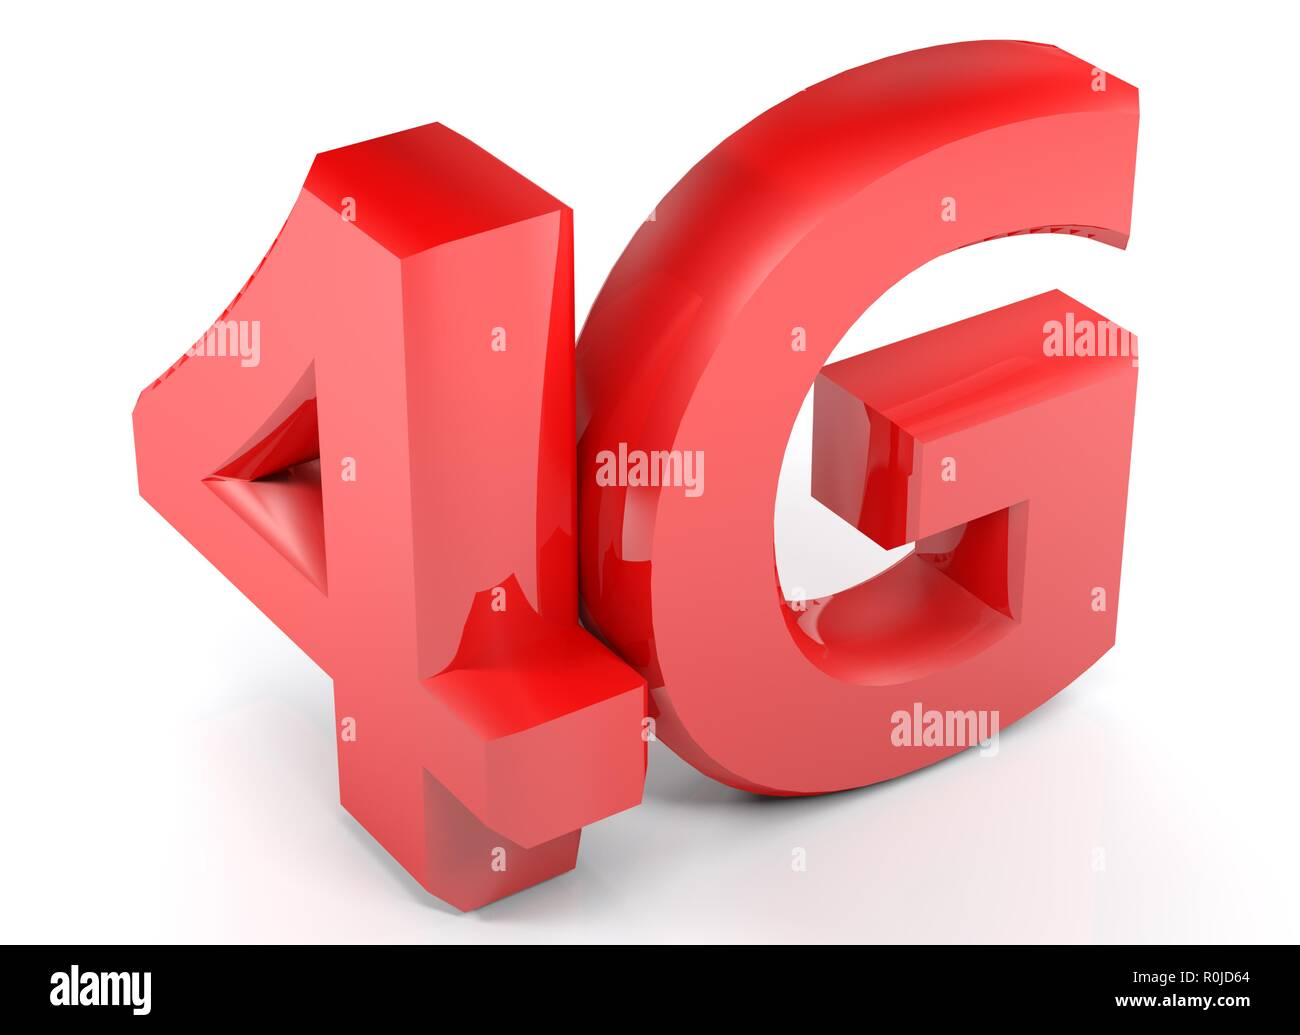 4G in red 3D characters on white background - 3D rendering illustration - Stock Image